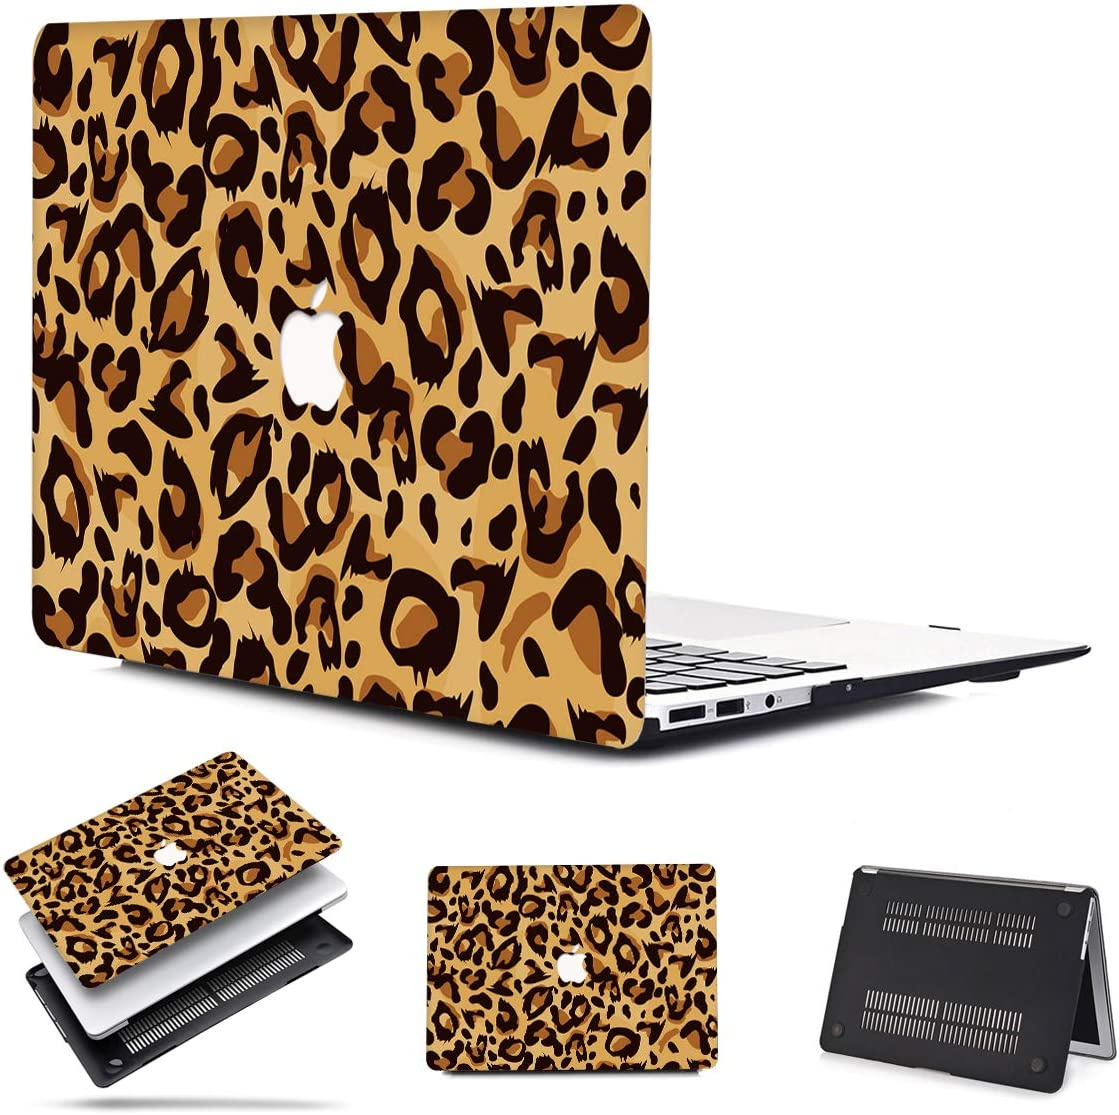 PapyHall New MacBook Air 13 Touch ID 2018 2019 2020 Release A1932 A2179 Plastic Shell Cover for MacBook Air 13 inch Retina with Touch ID Model: A2179 A1932 Leopard Brown